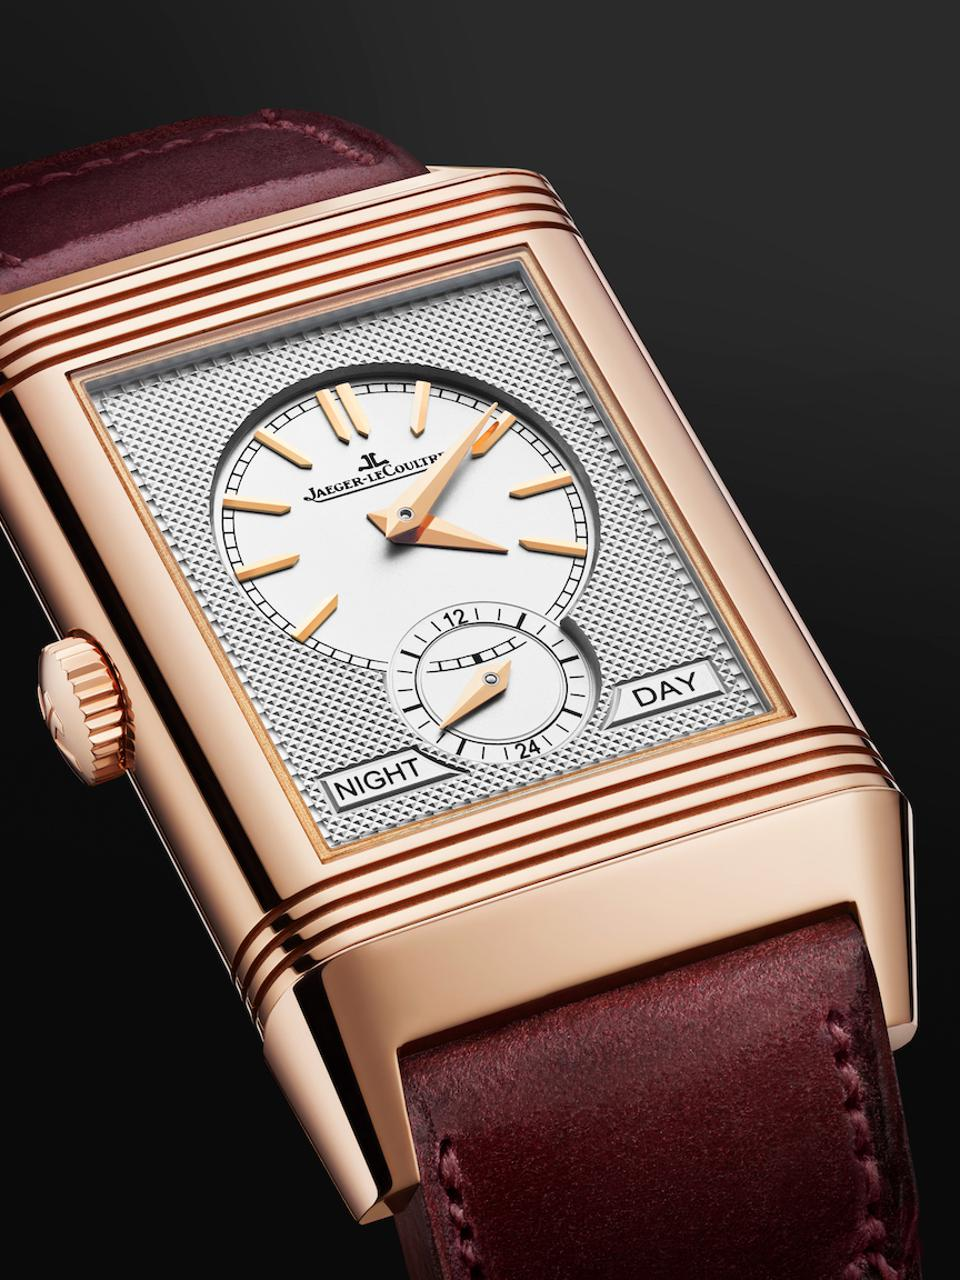 Jaeger-LeCoultre Reverso Tribute Duoface Fagliano Limited